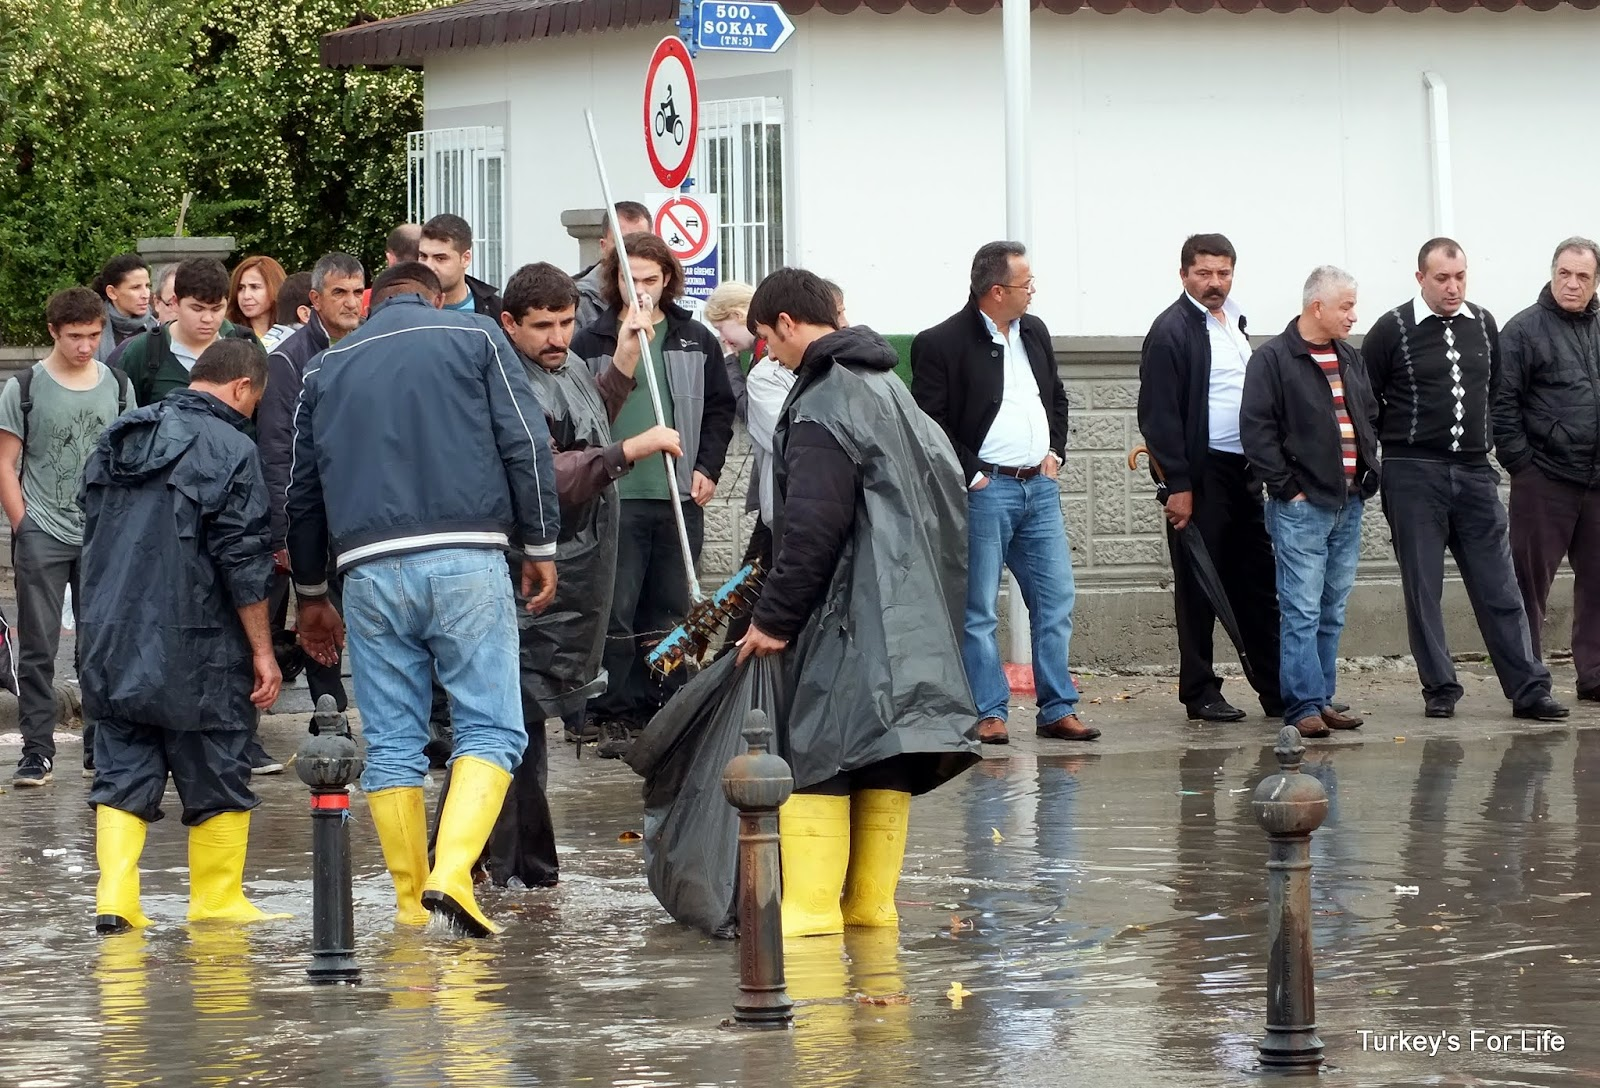 Flooding In Dispanser, Fethiye, Turkey